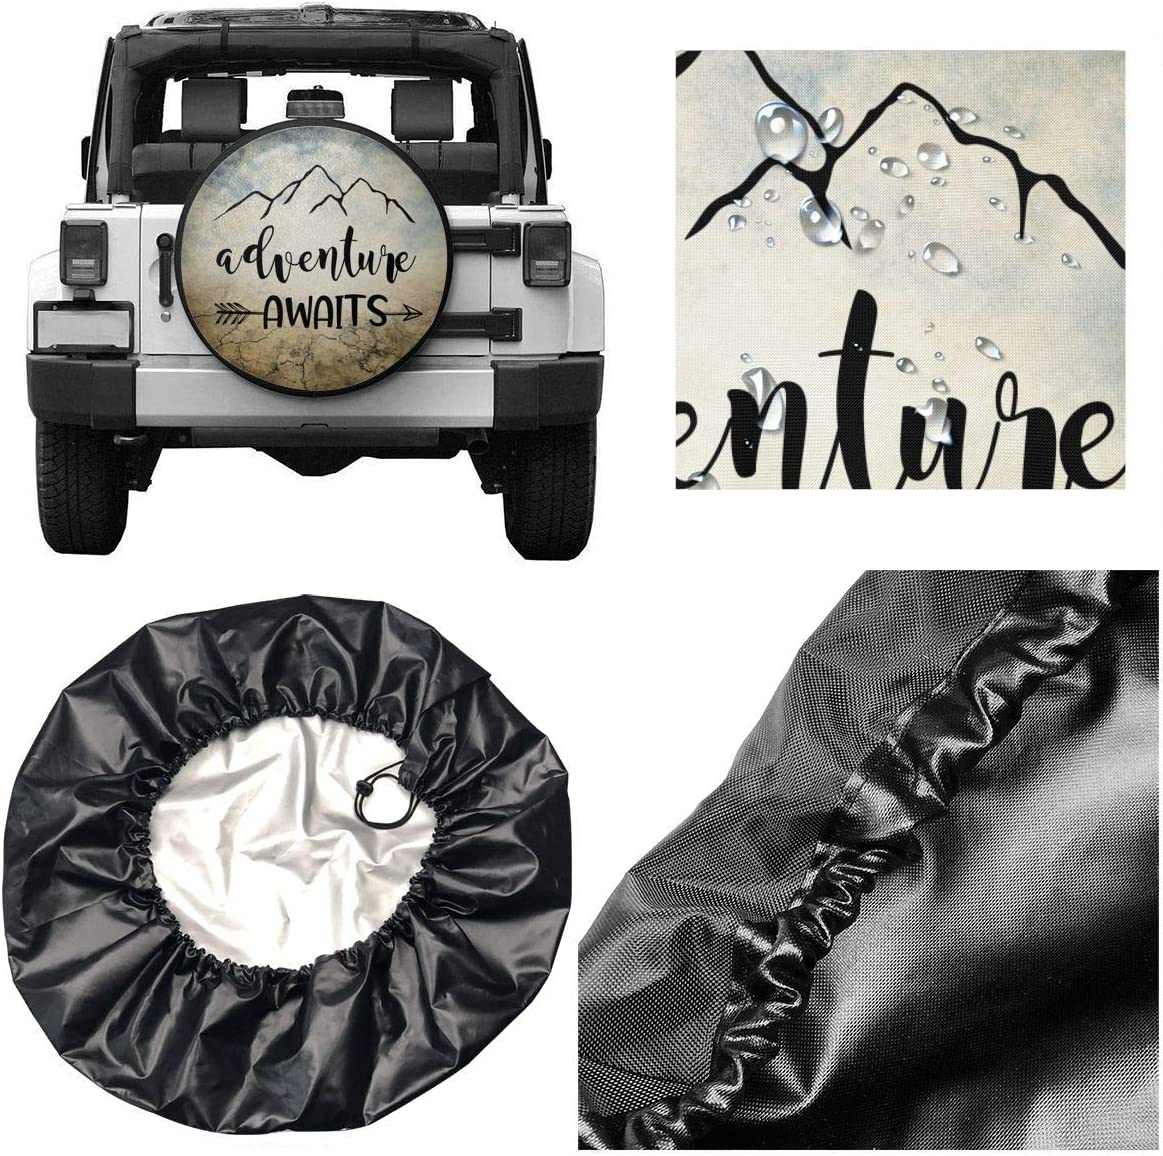 YZ-MAMU Spare Tire Cover Adventure Awaits Dust-Proof for Jeep Trailer RV SUV Truck Camper Travel Trailer Accessories